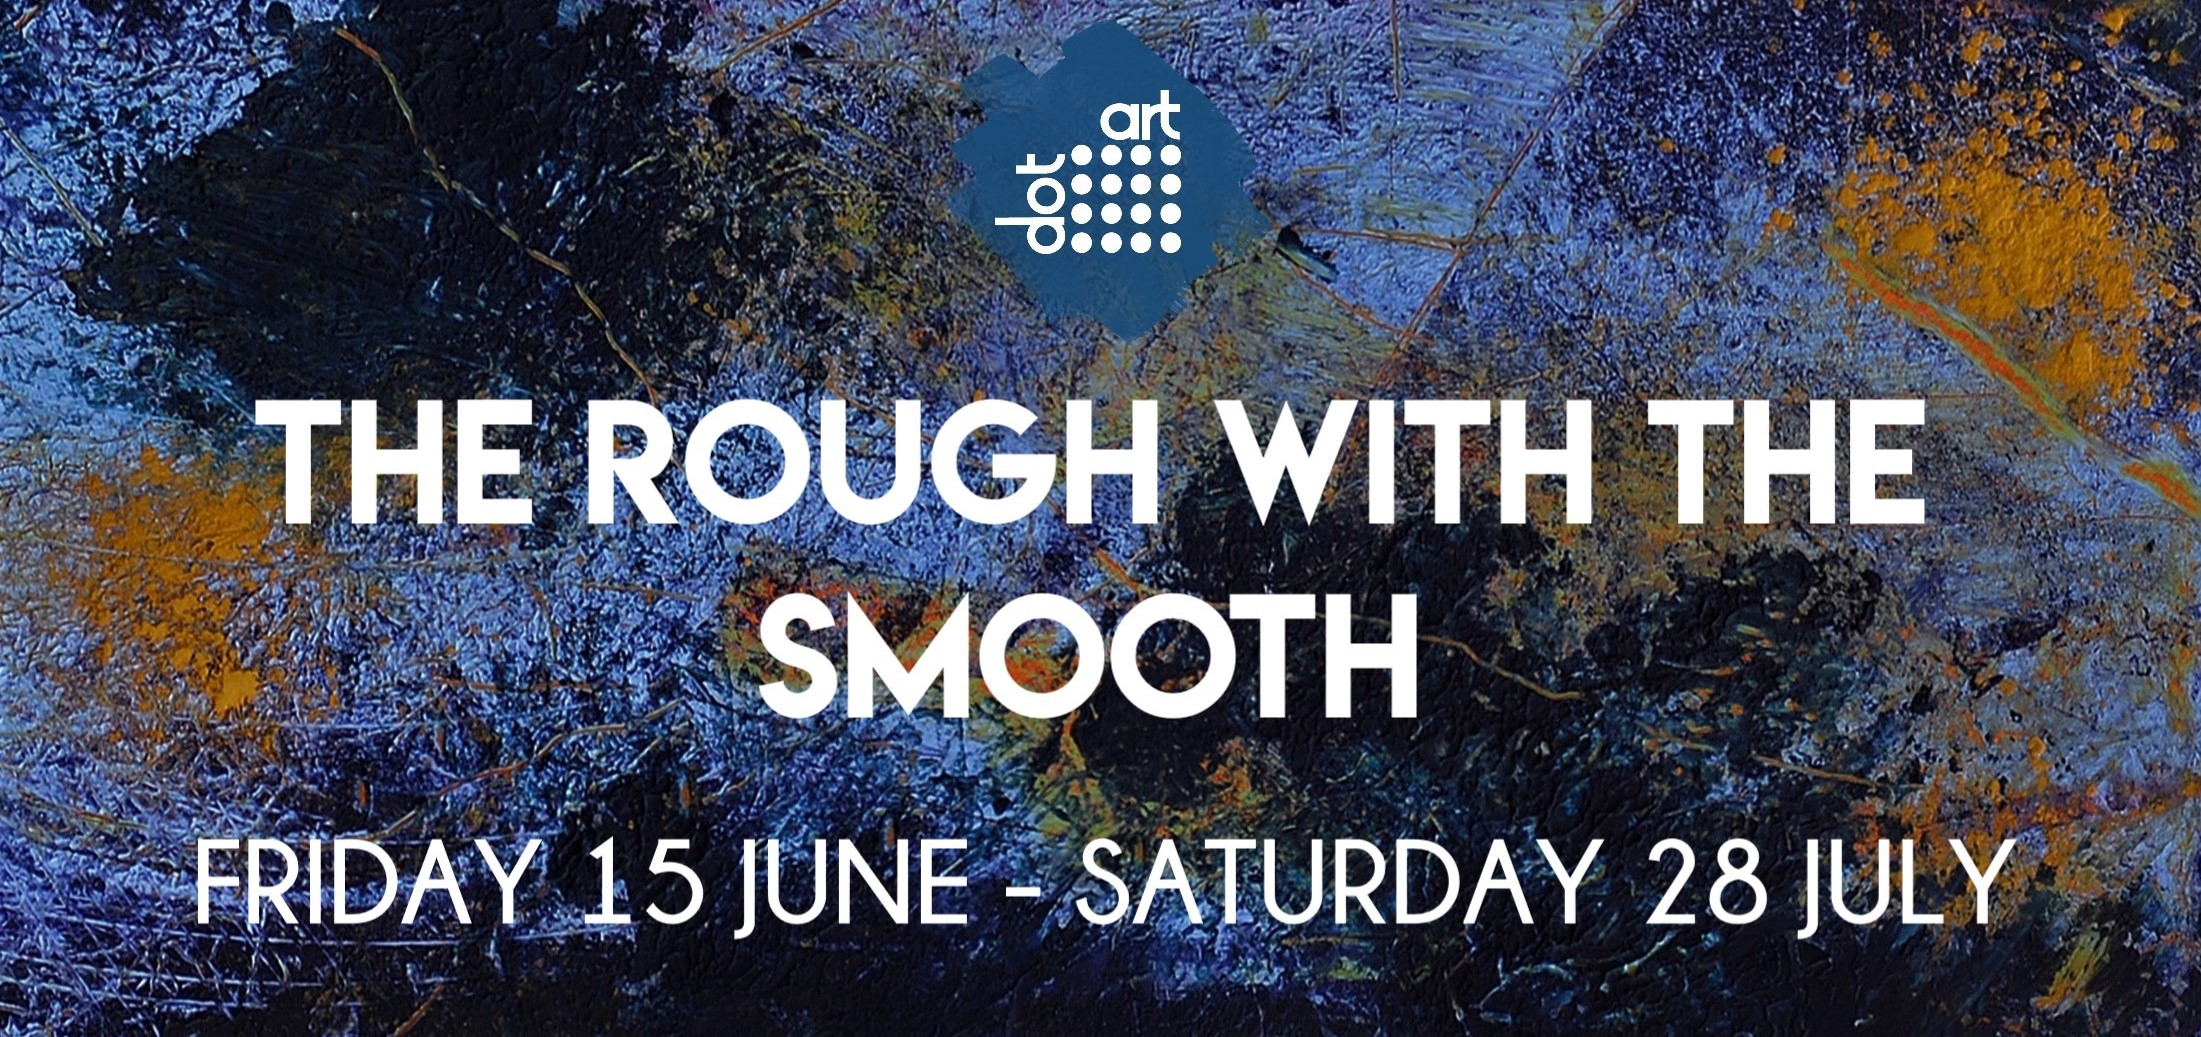 The Rough with the Smooth Exhibition